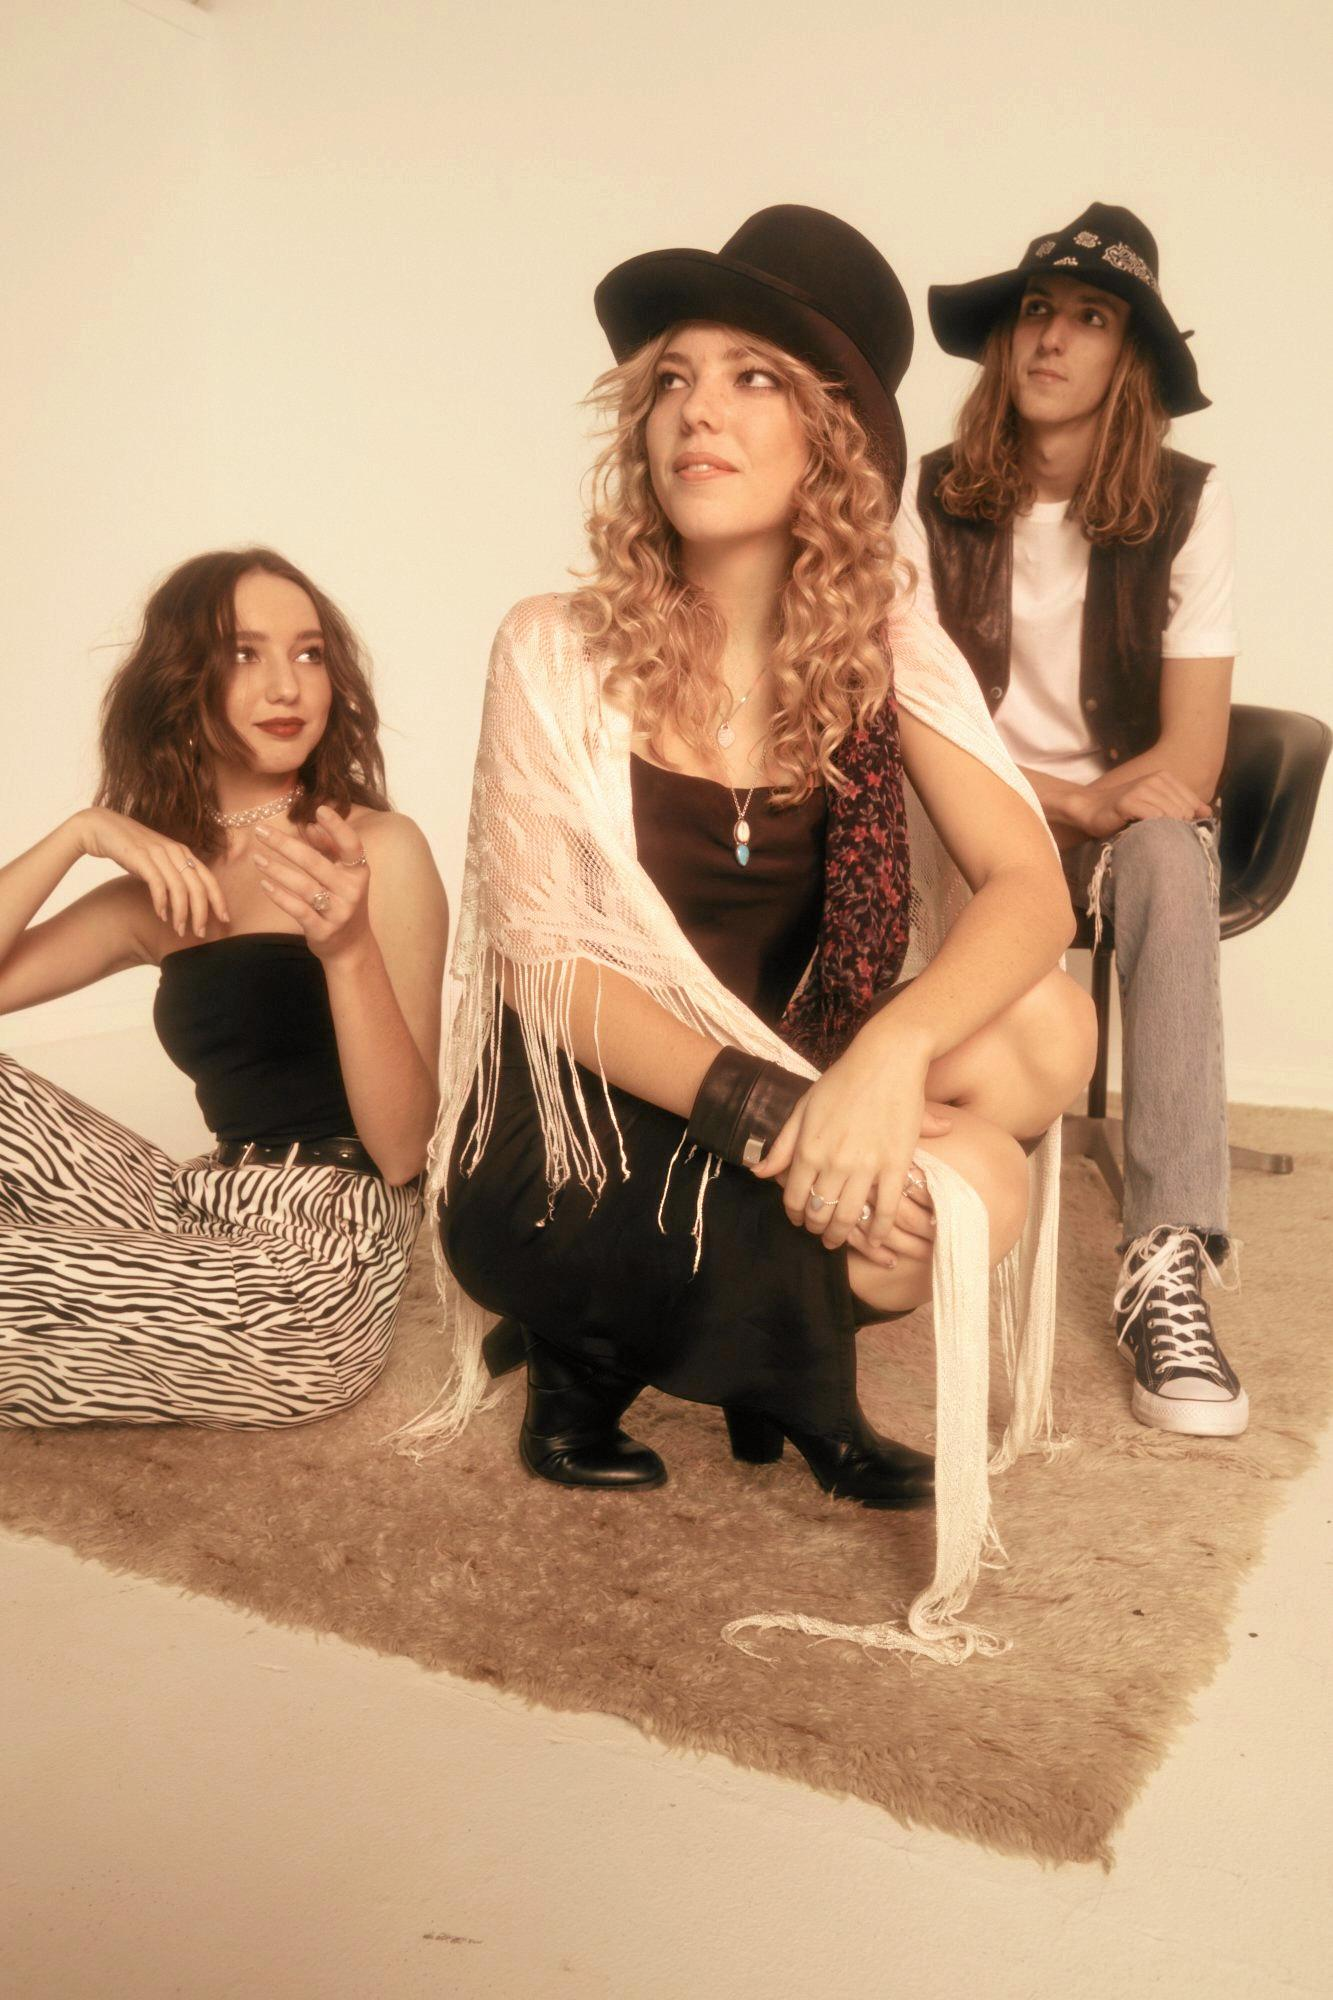 FAMILY BAND: The Buckleys are a chart-topping teenage sibling Country trio from Byron Bay consisting of Sarah Grace, Molly and Lachlan.